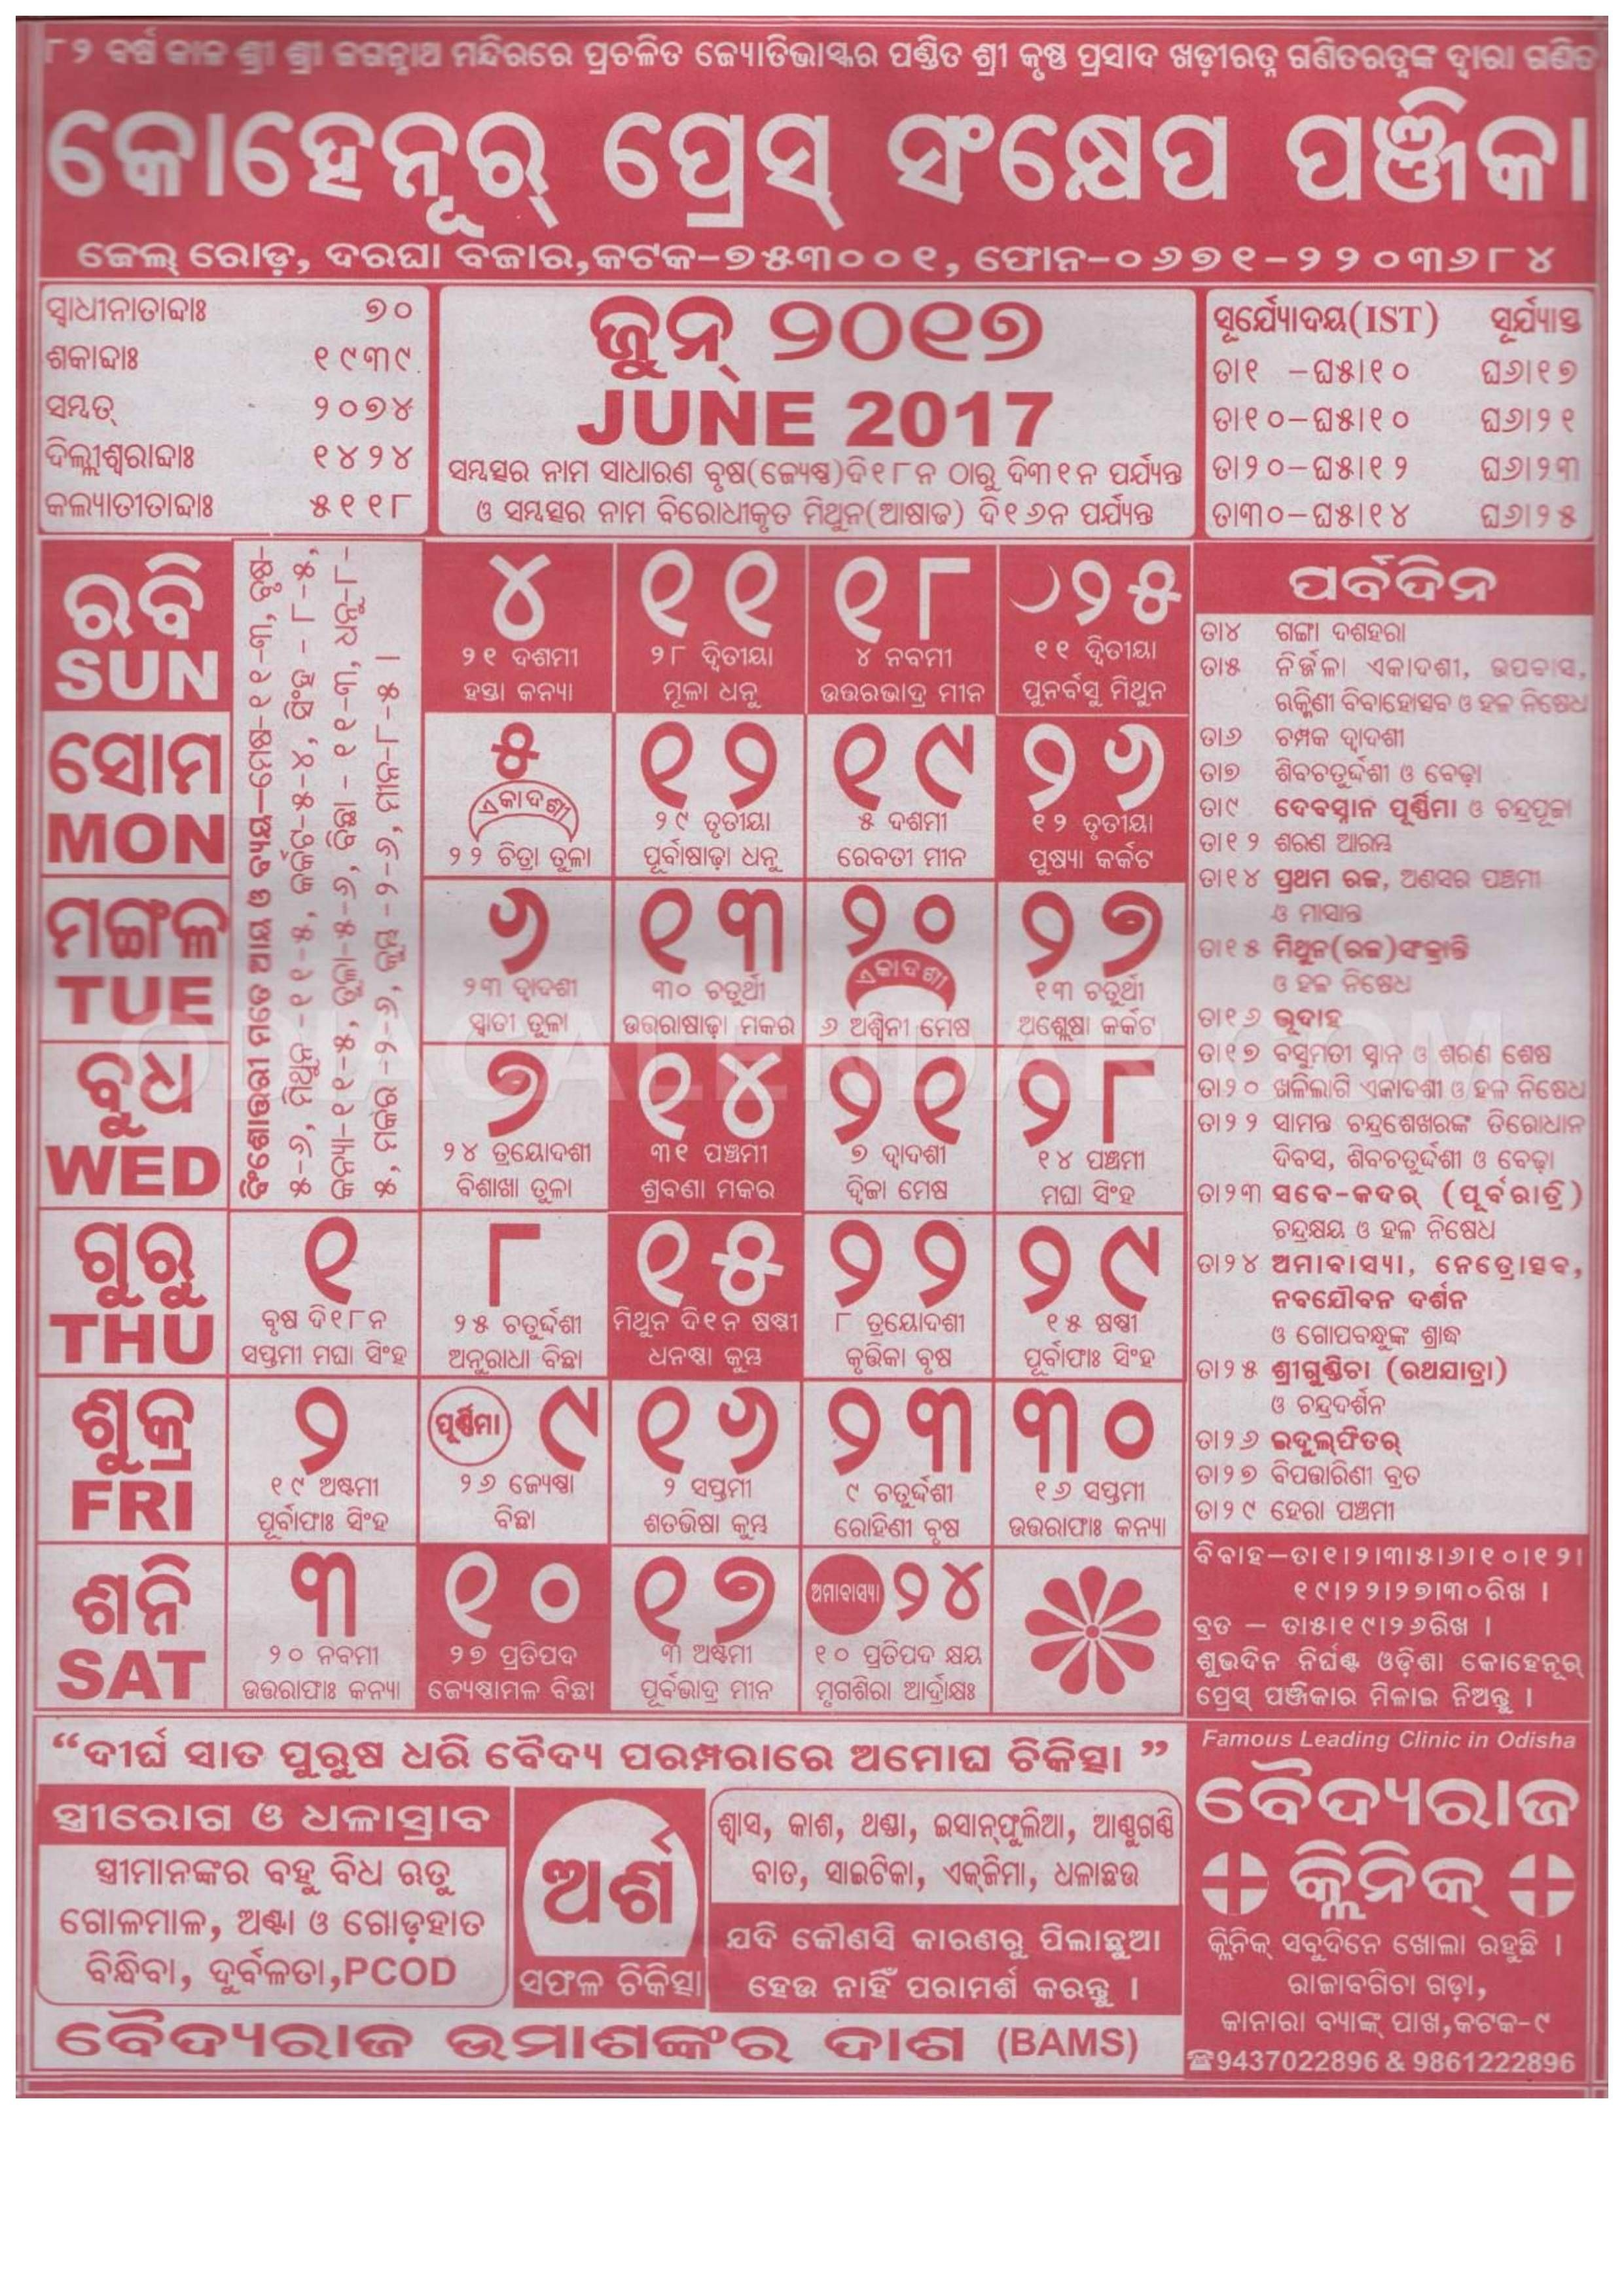 Pin By Moodisha On Odia Calendar | Calendar 2017, Calendar-Odia Calendar 2020 January